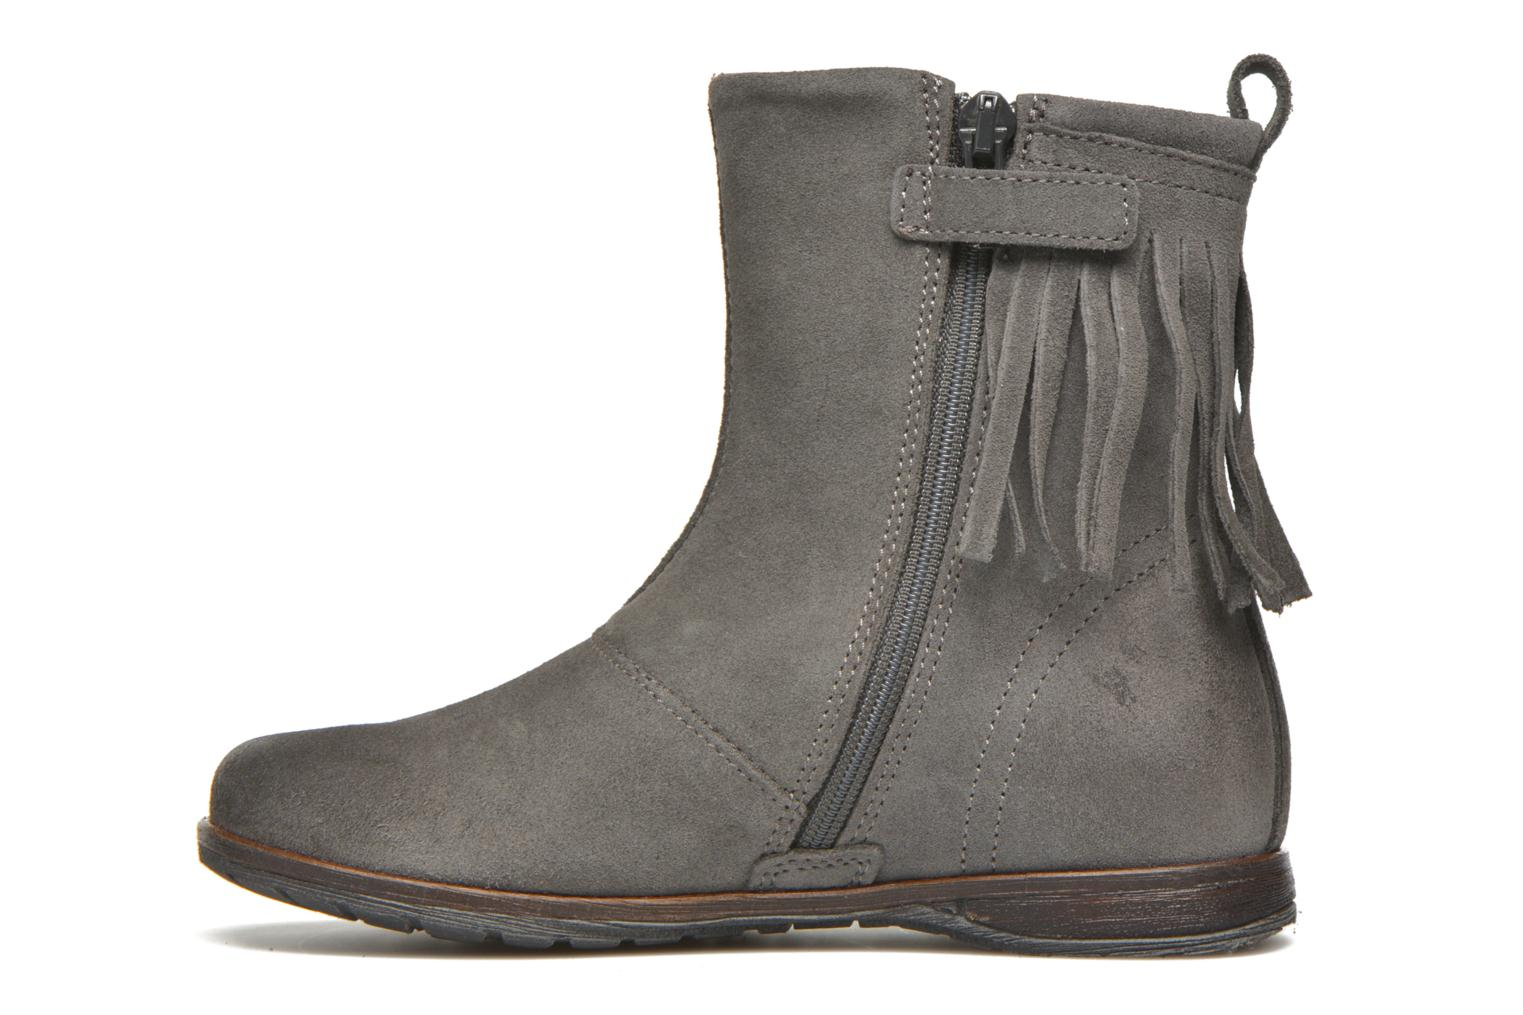 Bottines et boots Stones and Bones Stasa Gris vue face